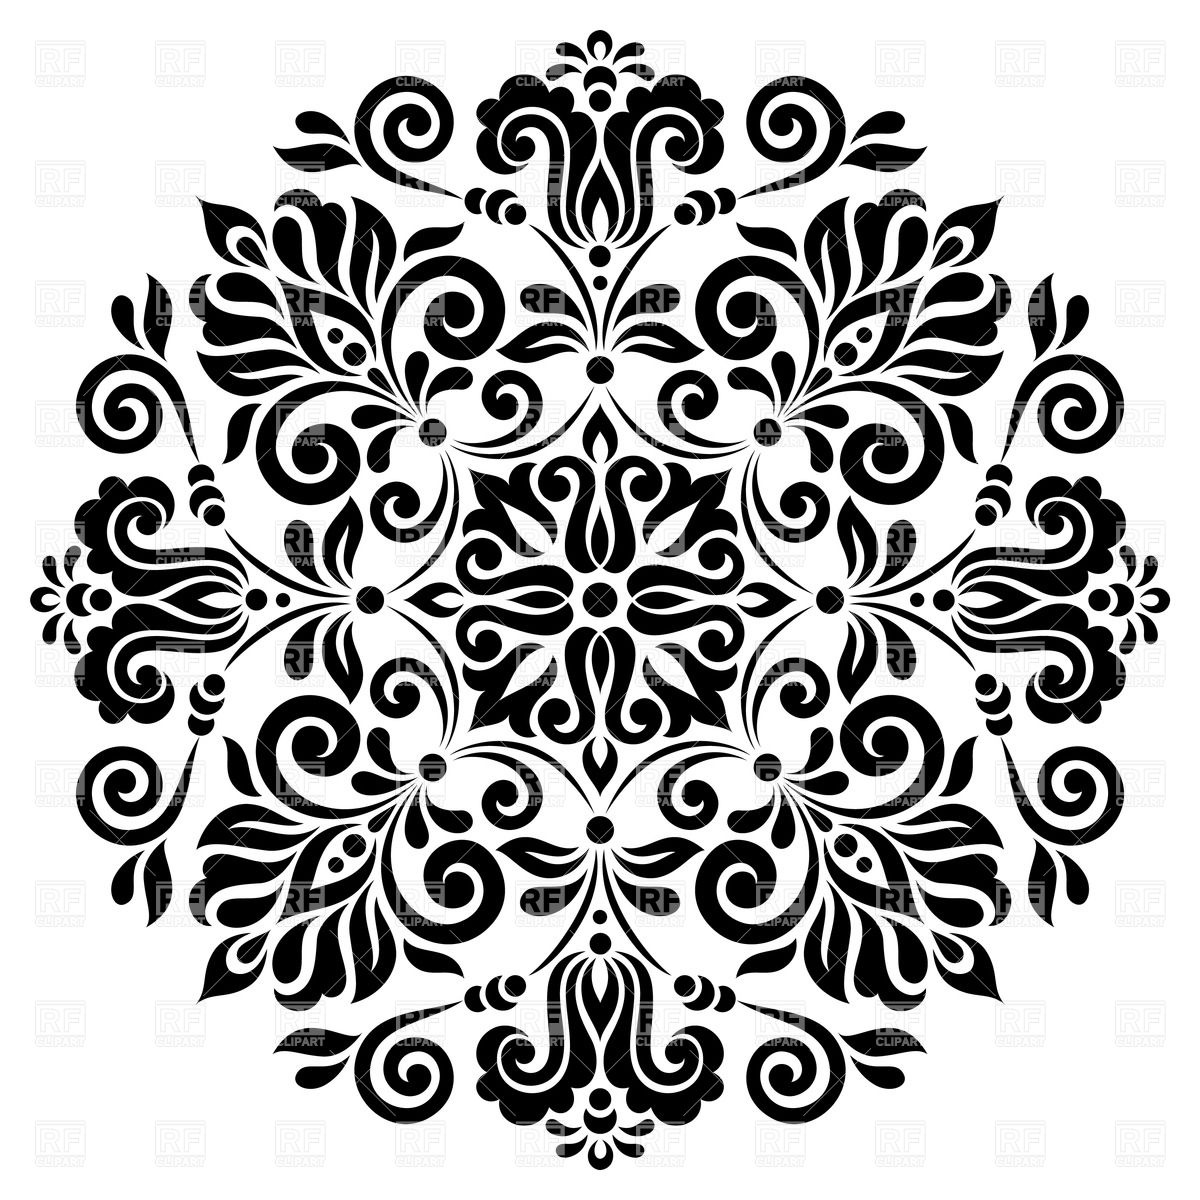 Pattern clipart images banner royalty free download Free Circle Pattern Cliparts, Download Free Clip Art, Free ... banner royalty free download